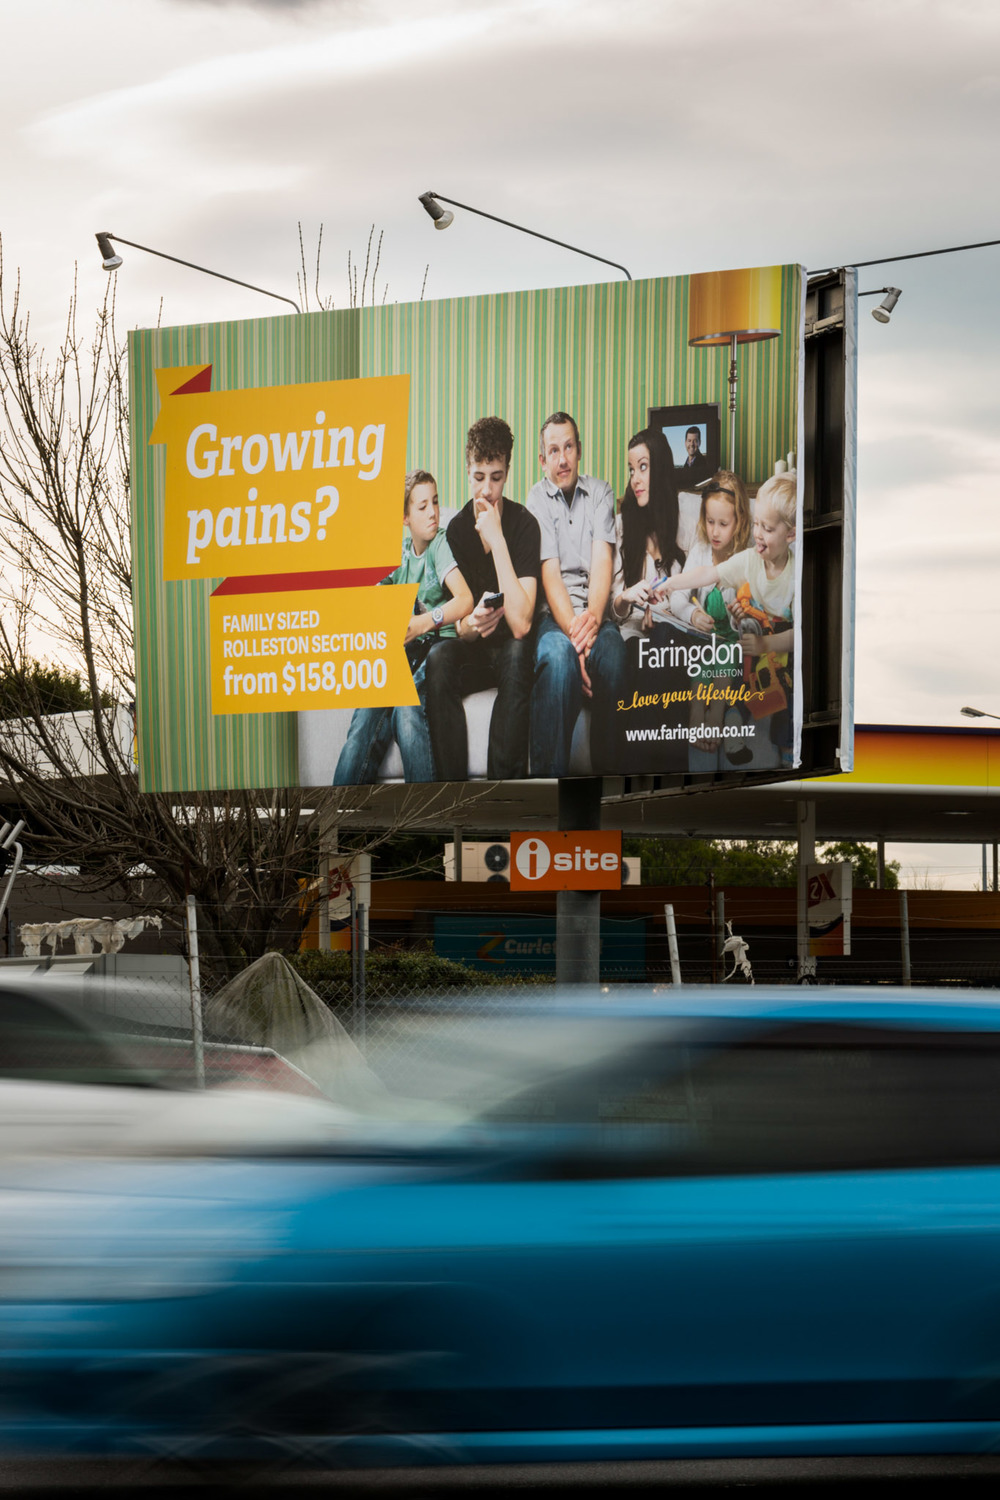 Faringdon_Billboard-growingpains.jpg